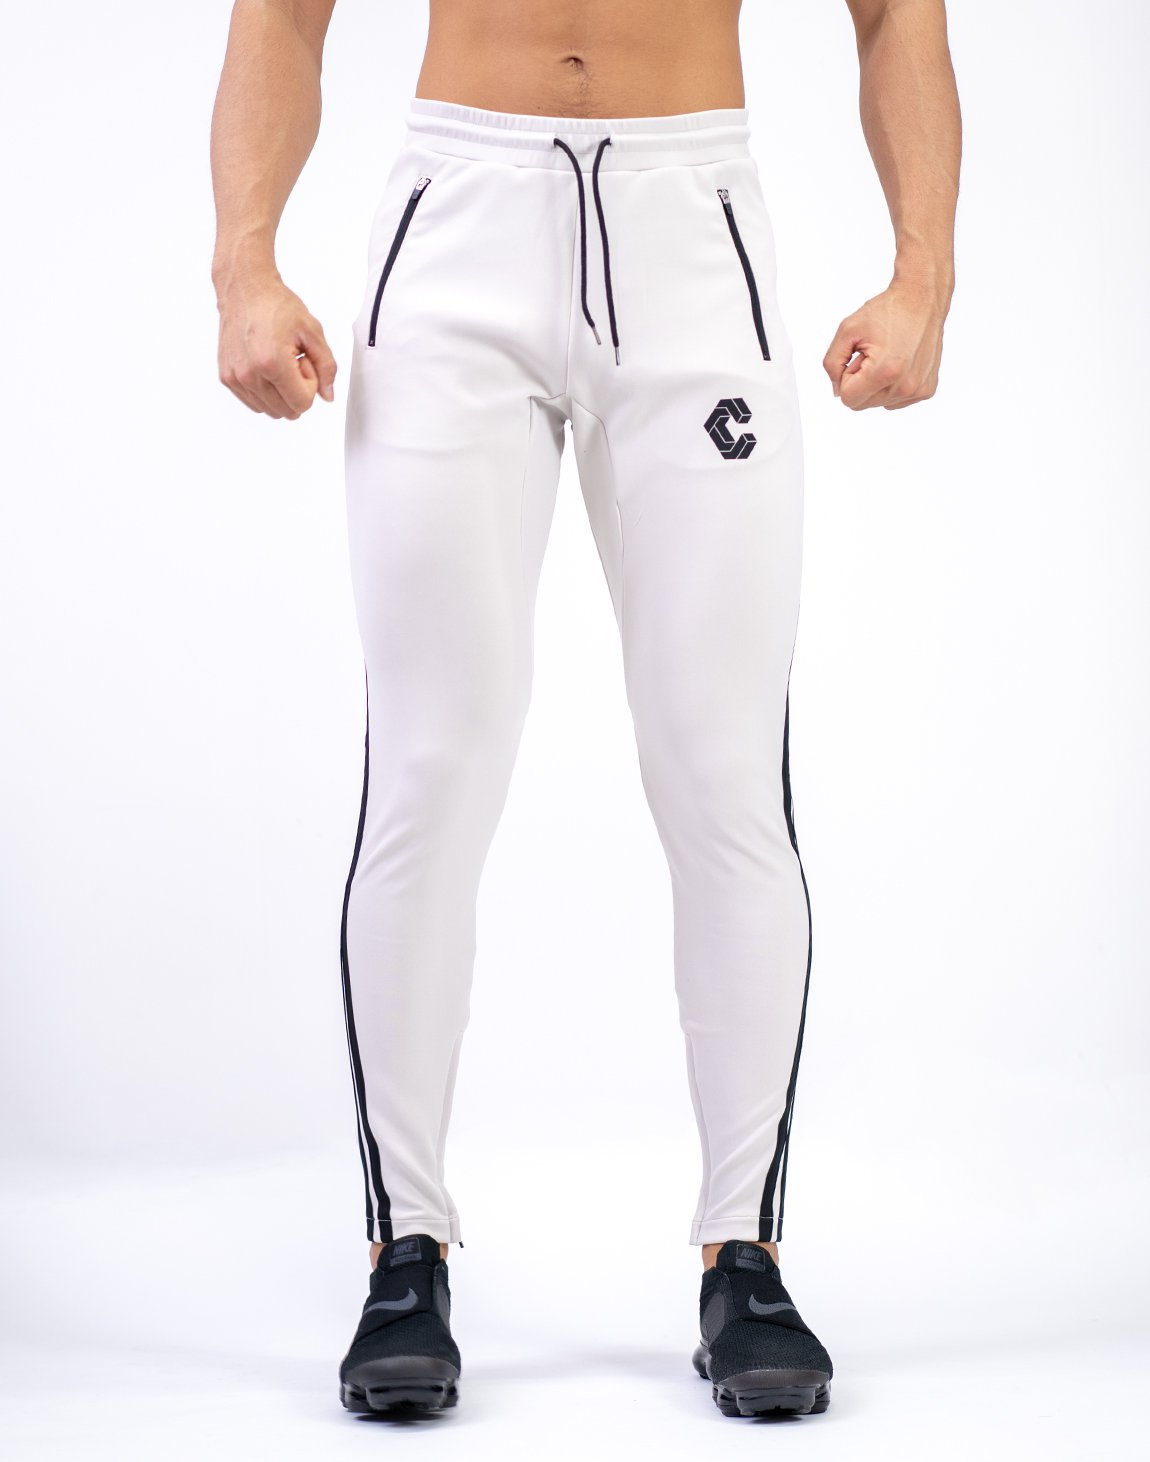 <img class='new_mark_img1' src='https://img.shop-pro.jp/img/new/icons1.gif' style='border:none;display:inline;margin:0px;padding:0px;width:auto;' />MODE CURVE STRIPE PANTS BEIGE